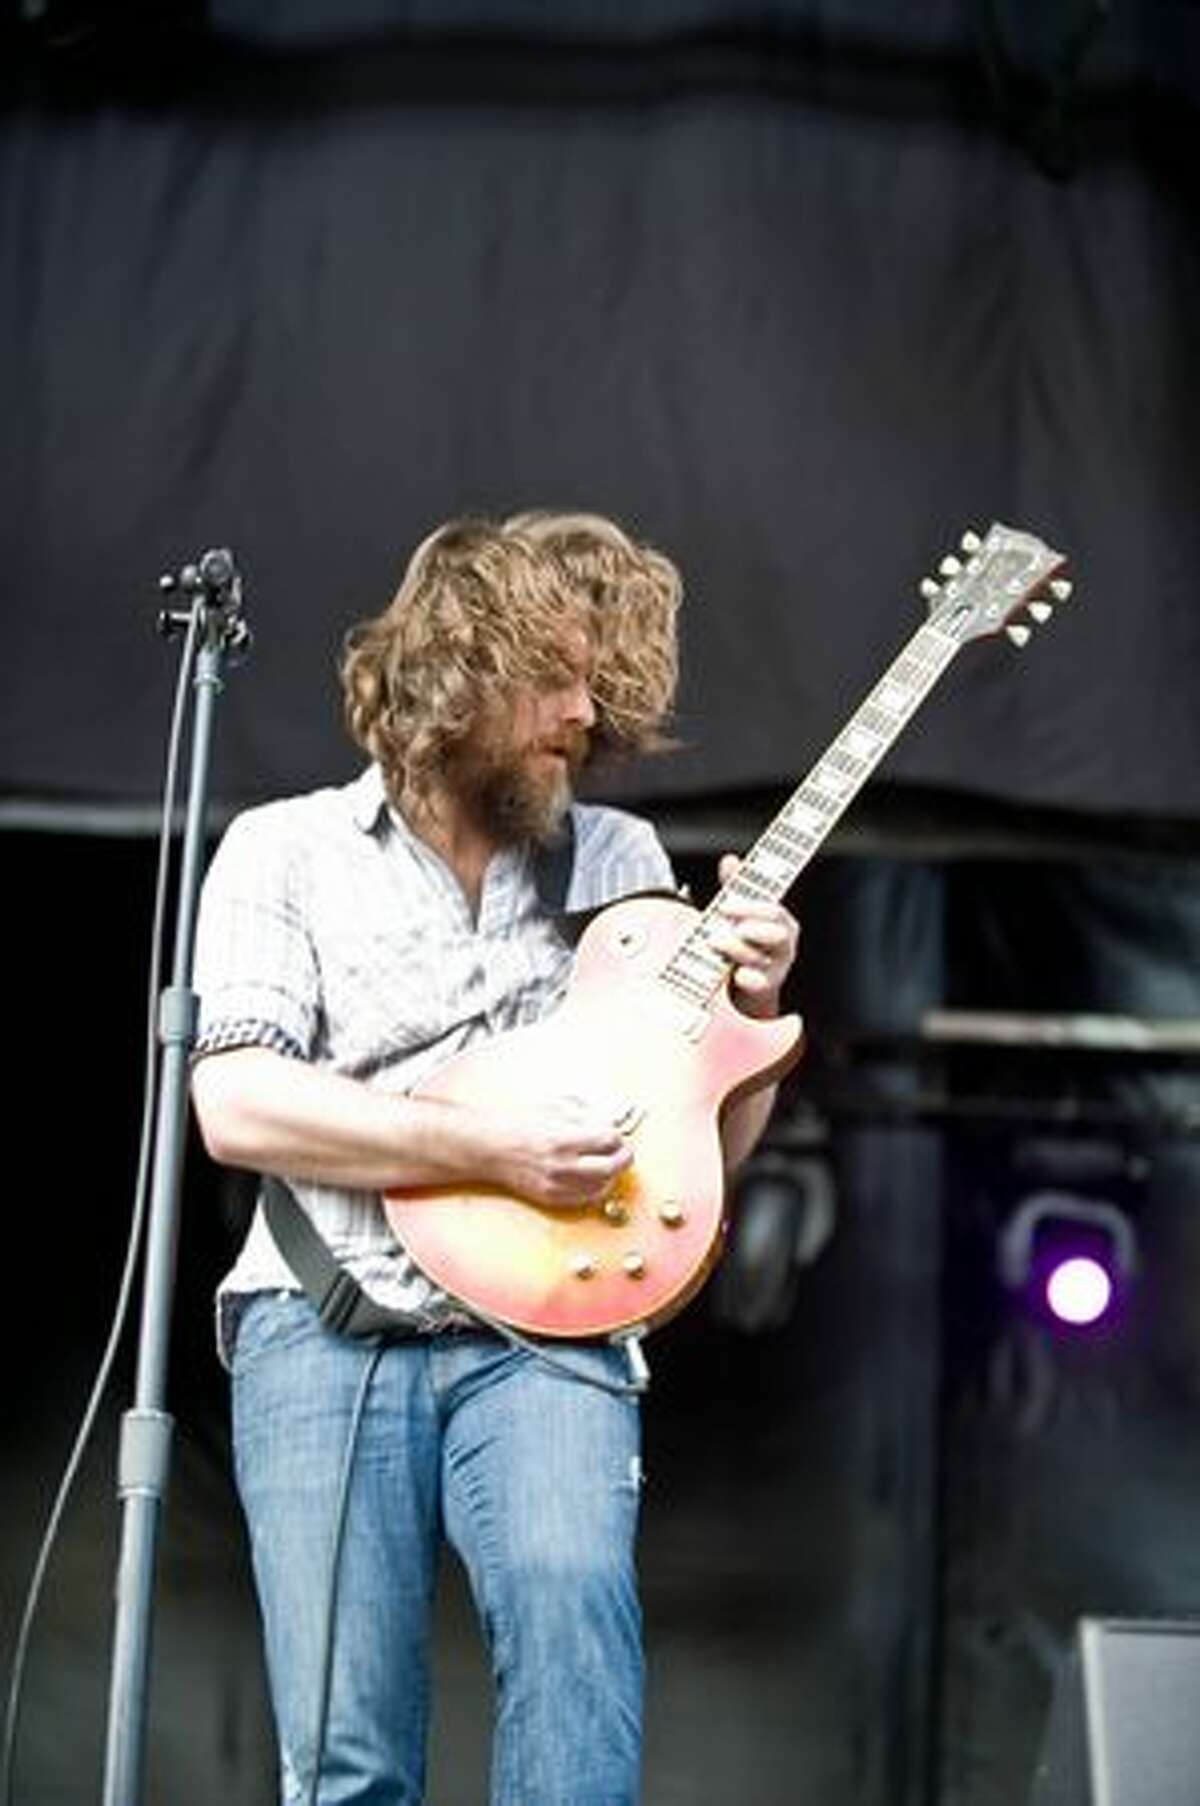 Minus the Bear performing at Sasquatch Music Festival on Saturday at the Gorge Amphitheatre.